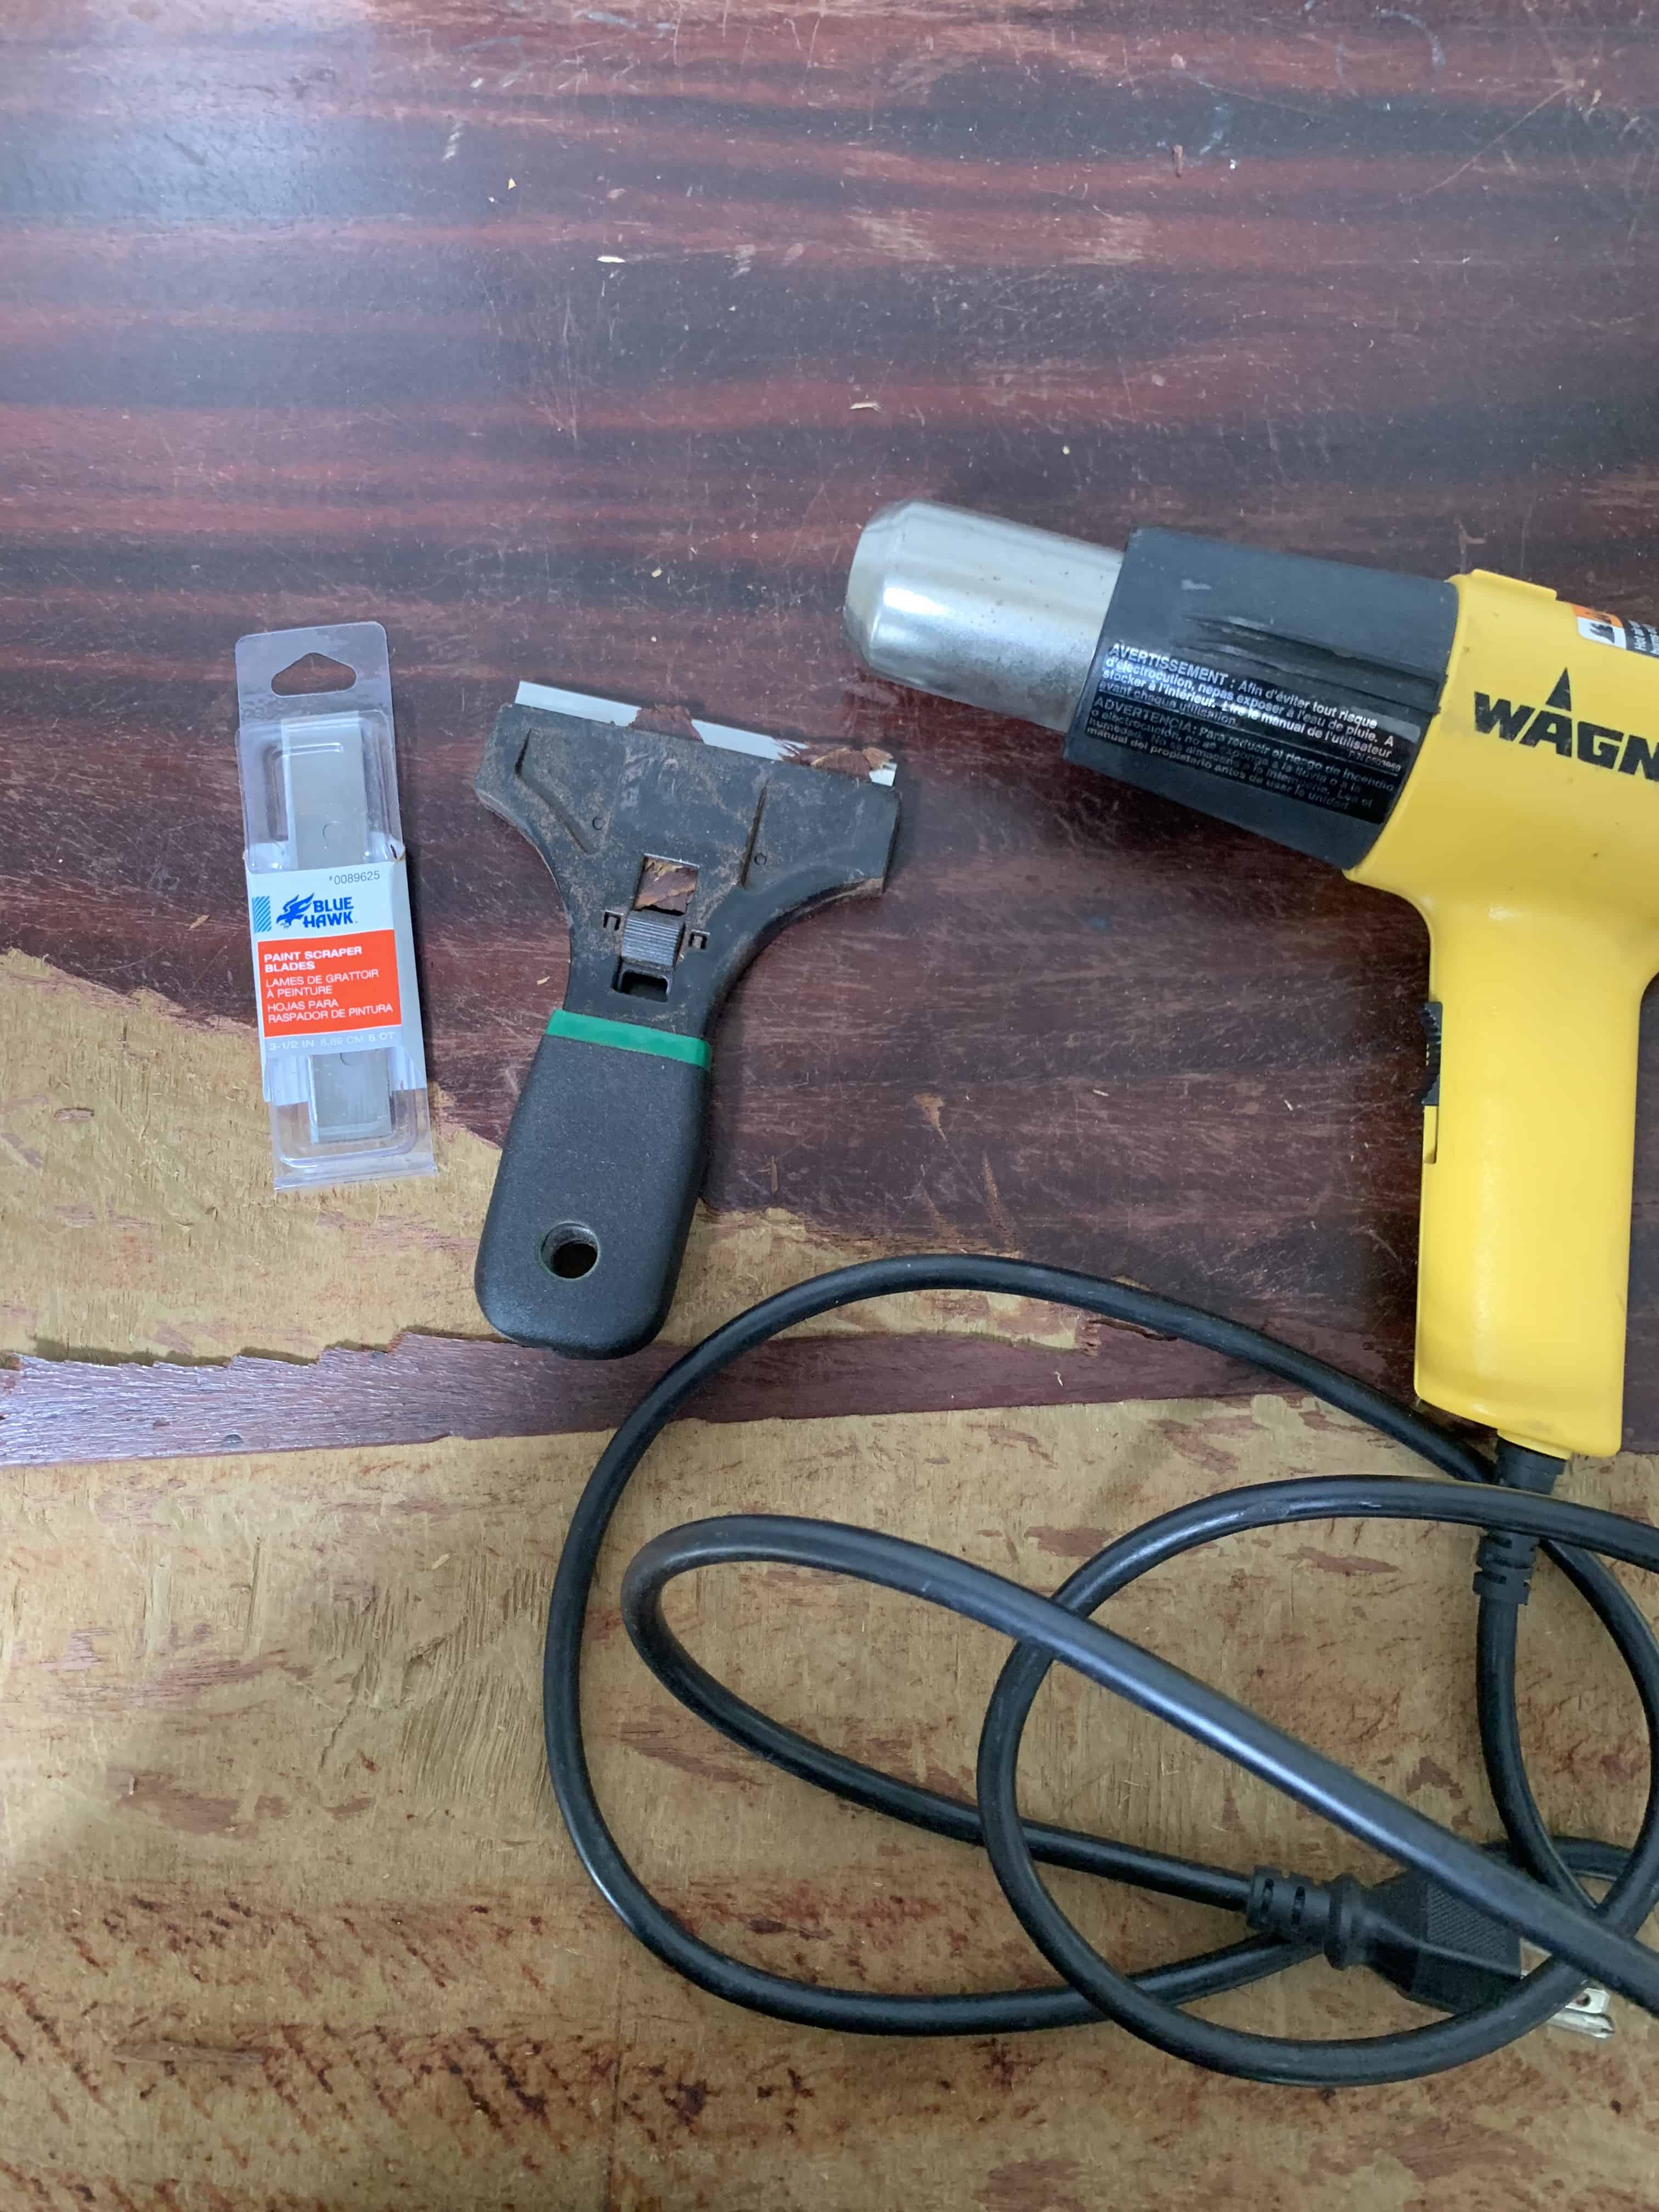 Removing veneer and refinishing old furniture, with several methods to get a raw wood finish.